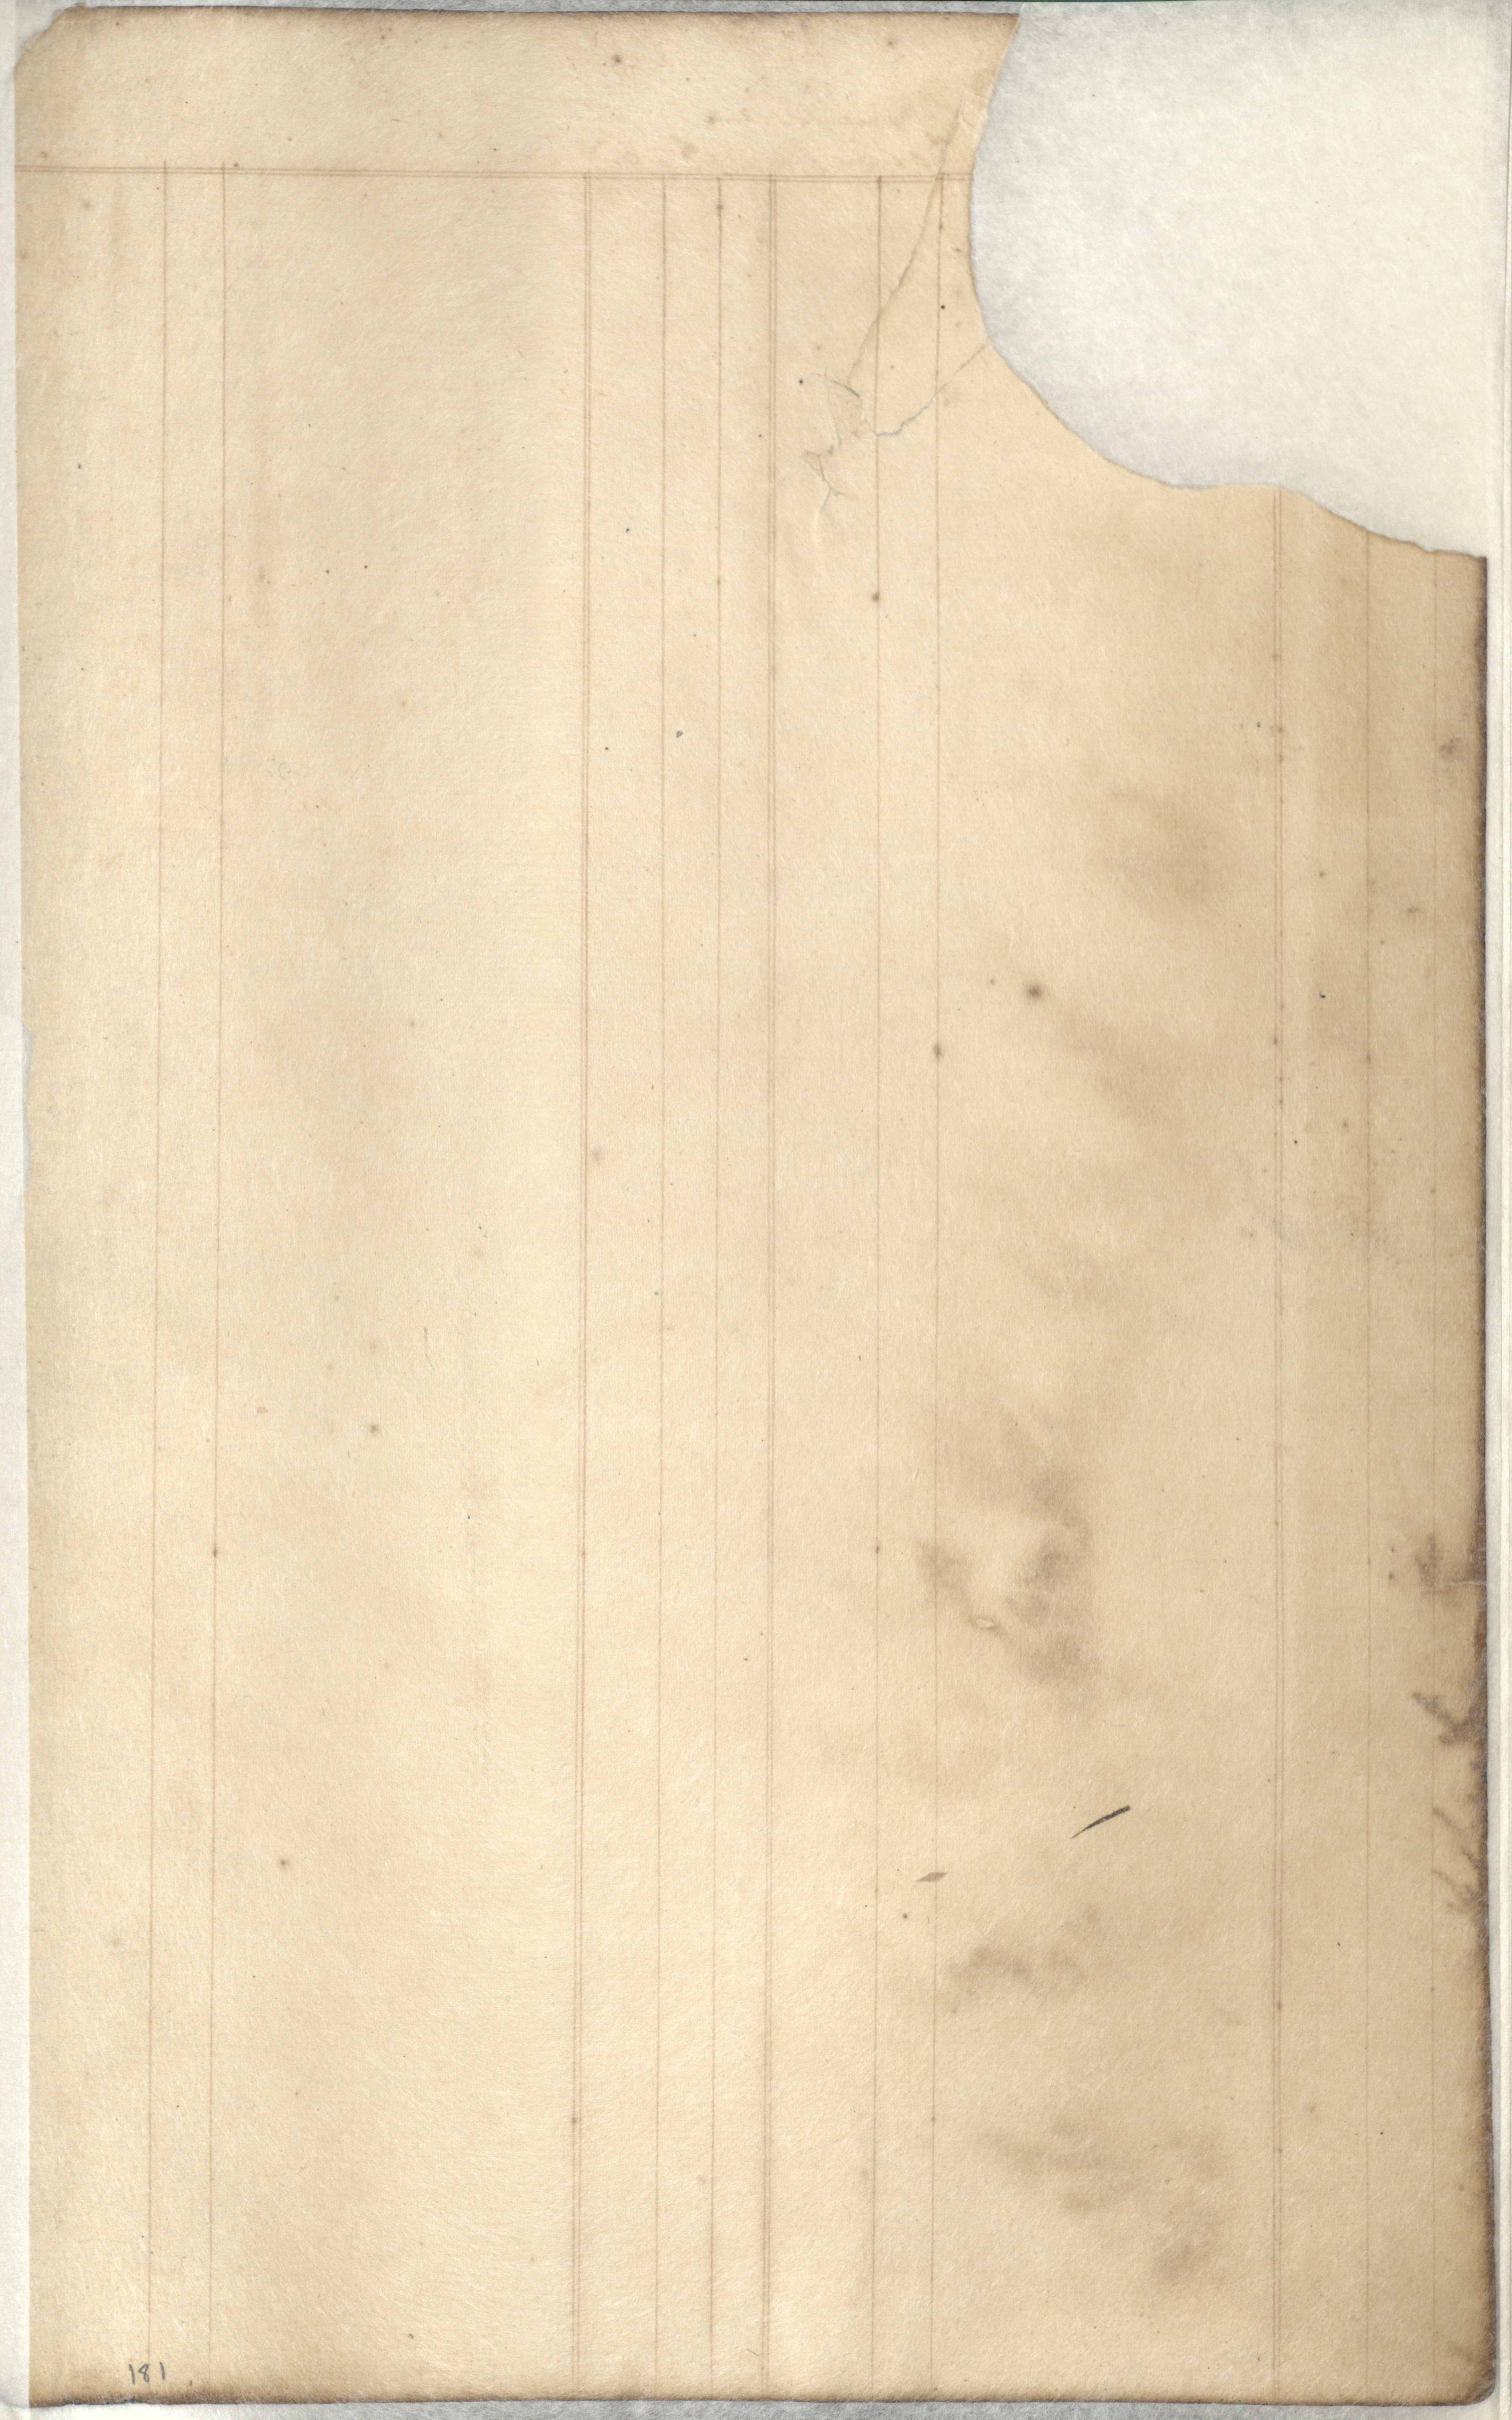 Plowden Weston's Business Ledger, Plantation Records 100